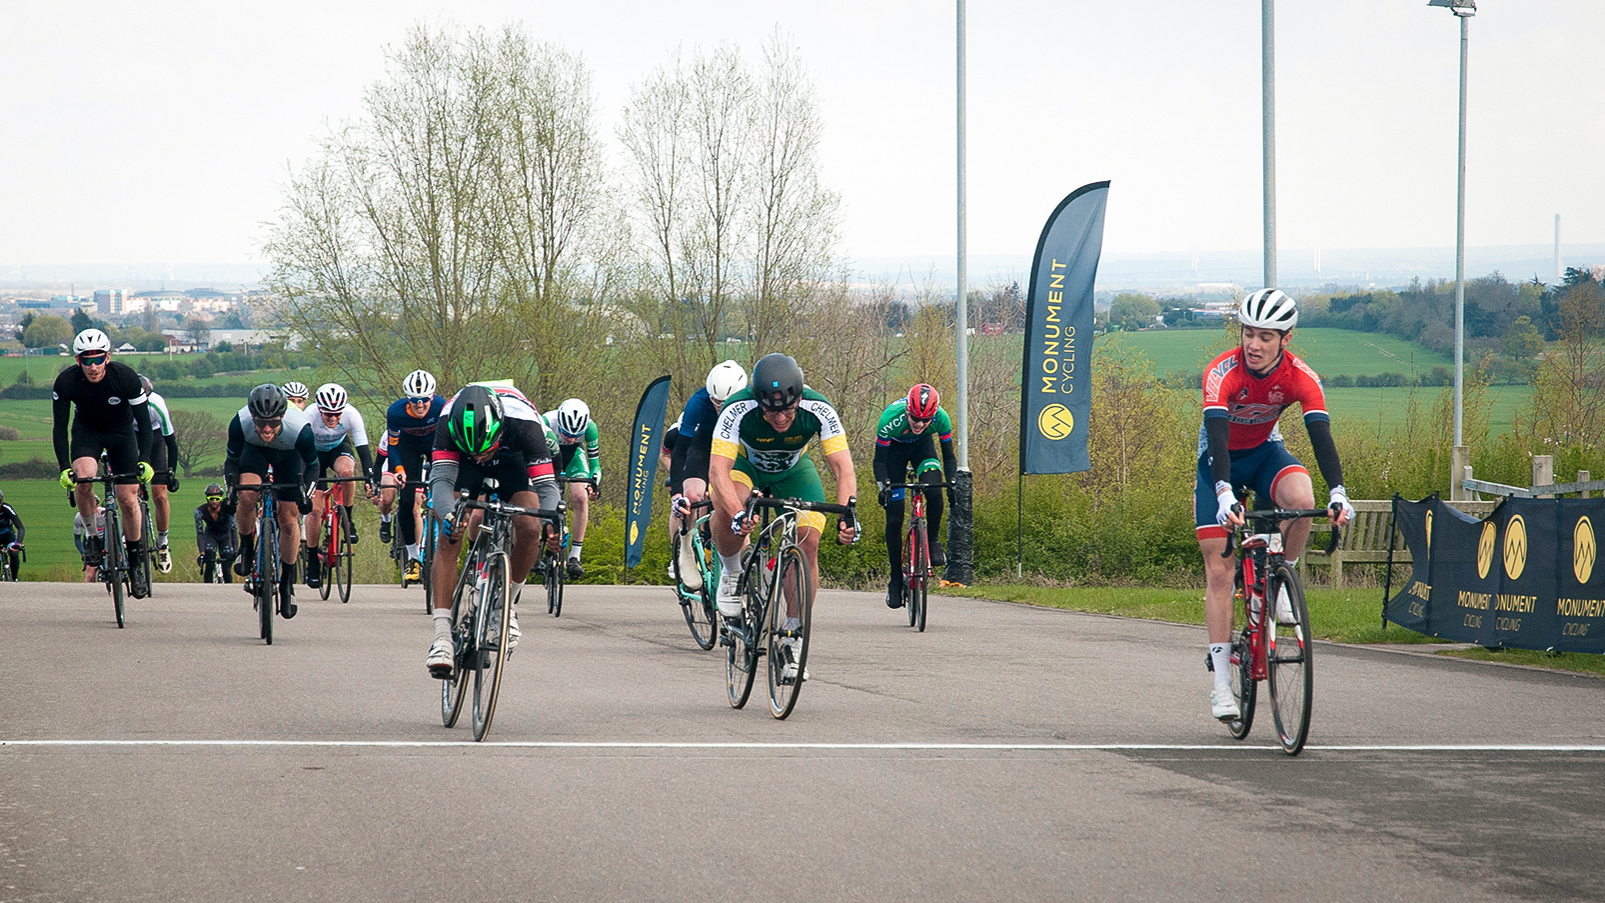 2019 Monument Spring crits 5s (3 of 3).JPG